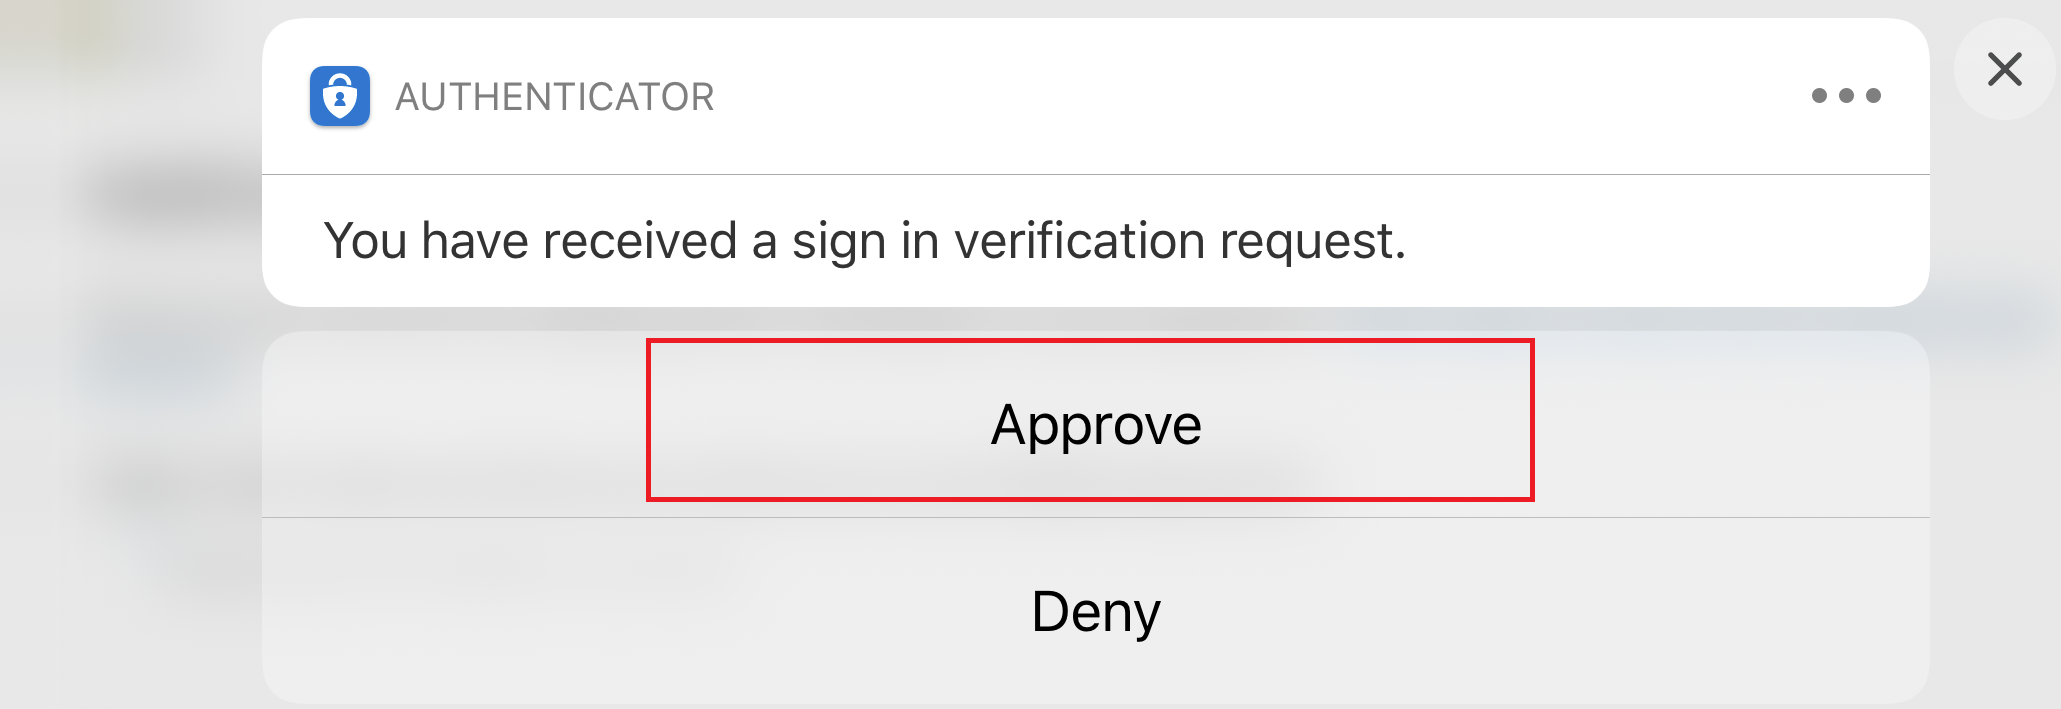 Approve the notification for Microsoft Authenticator